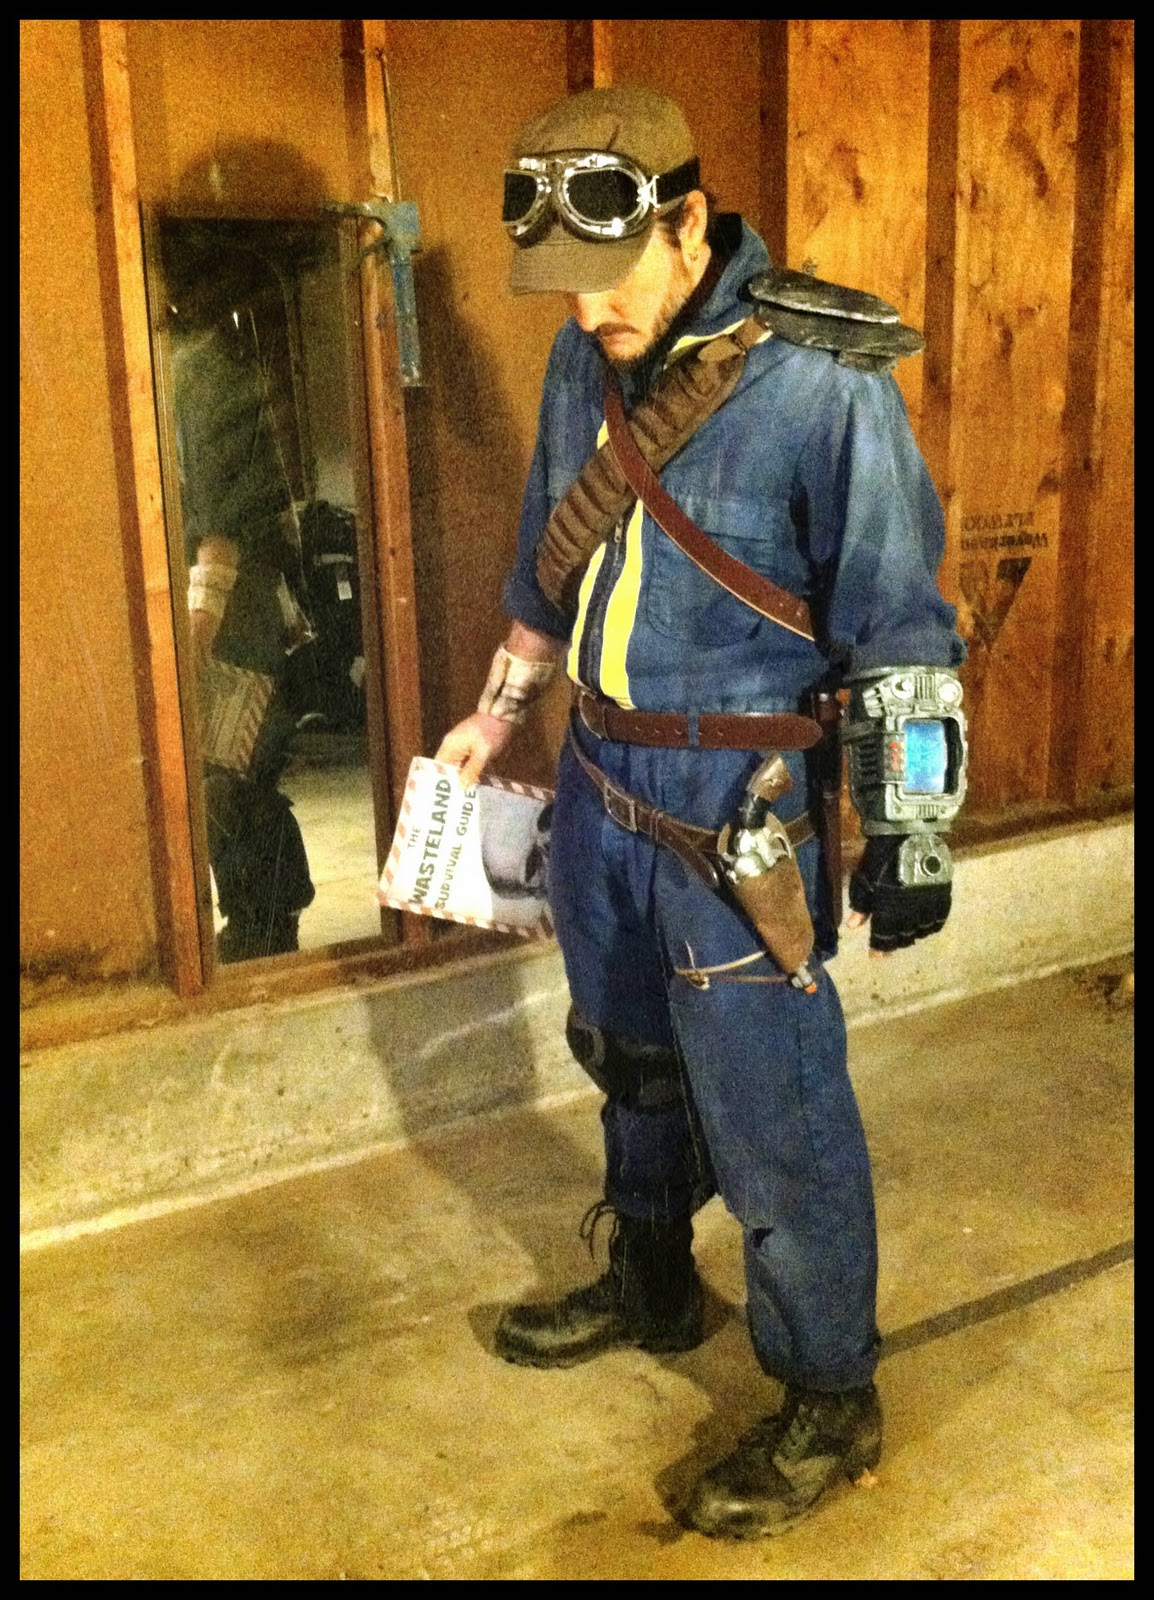 World Of Technology: Happy Fallout-o-ween! Costume and